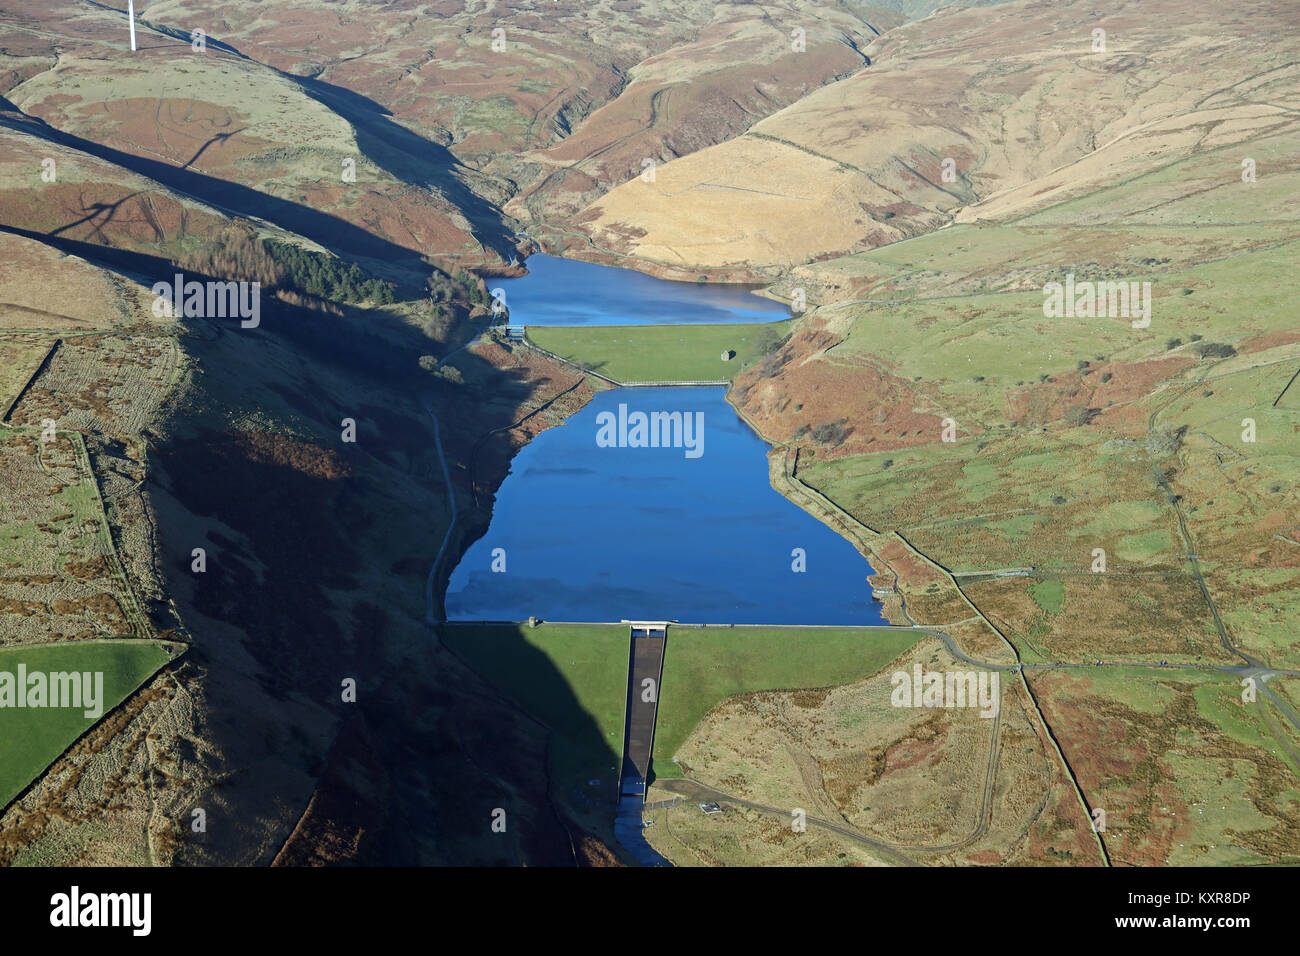 aerial view of Naden Higher & Naden Middle Reservoirs near Bury, UK - Stock Image